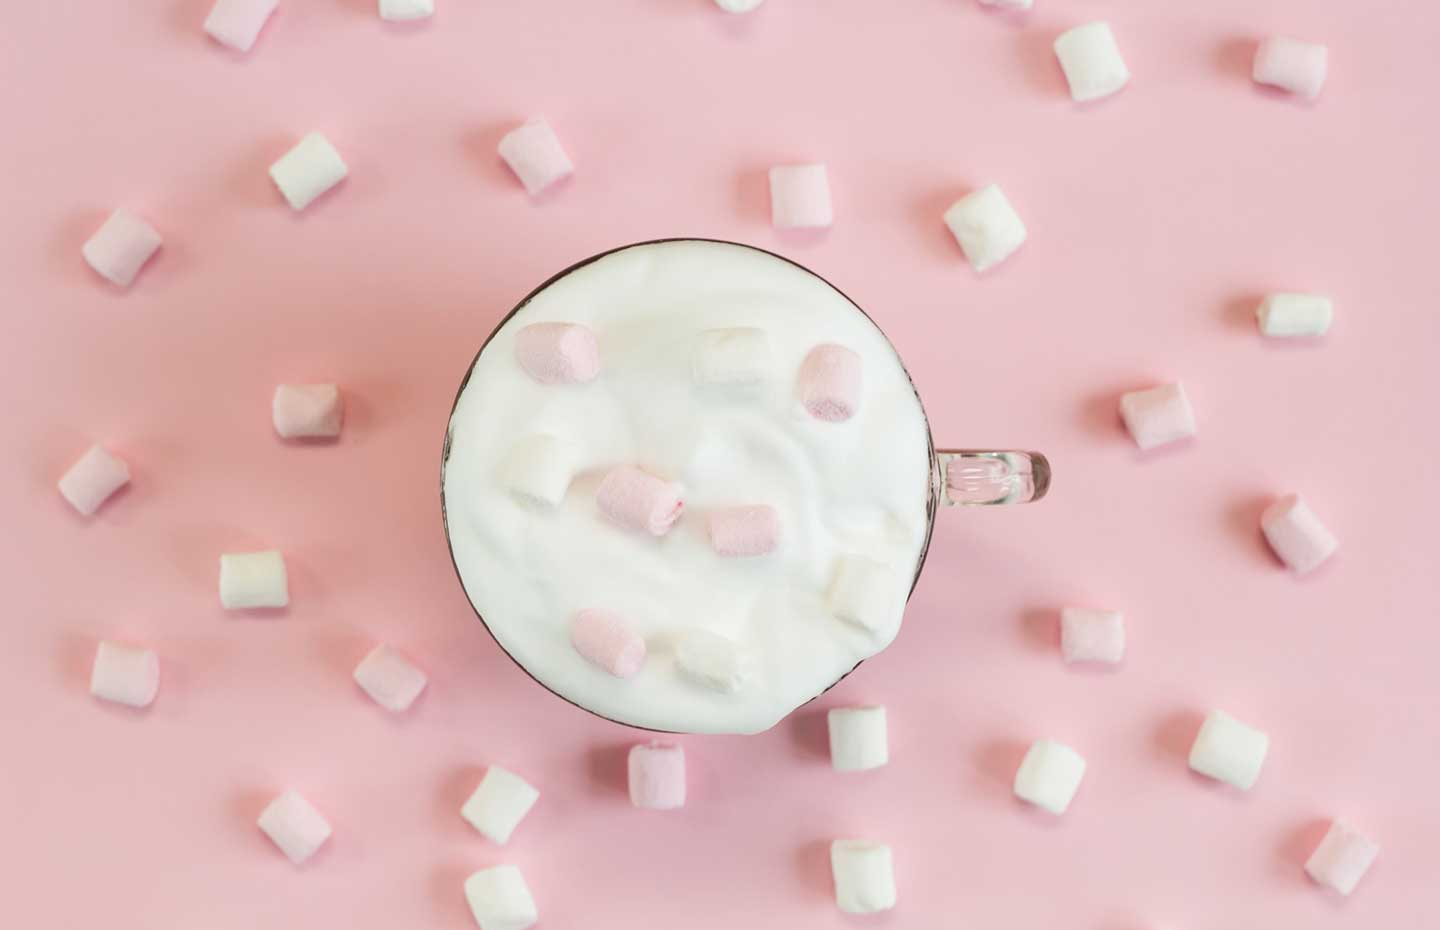 Hot chocolate for a crowd